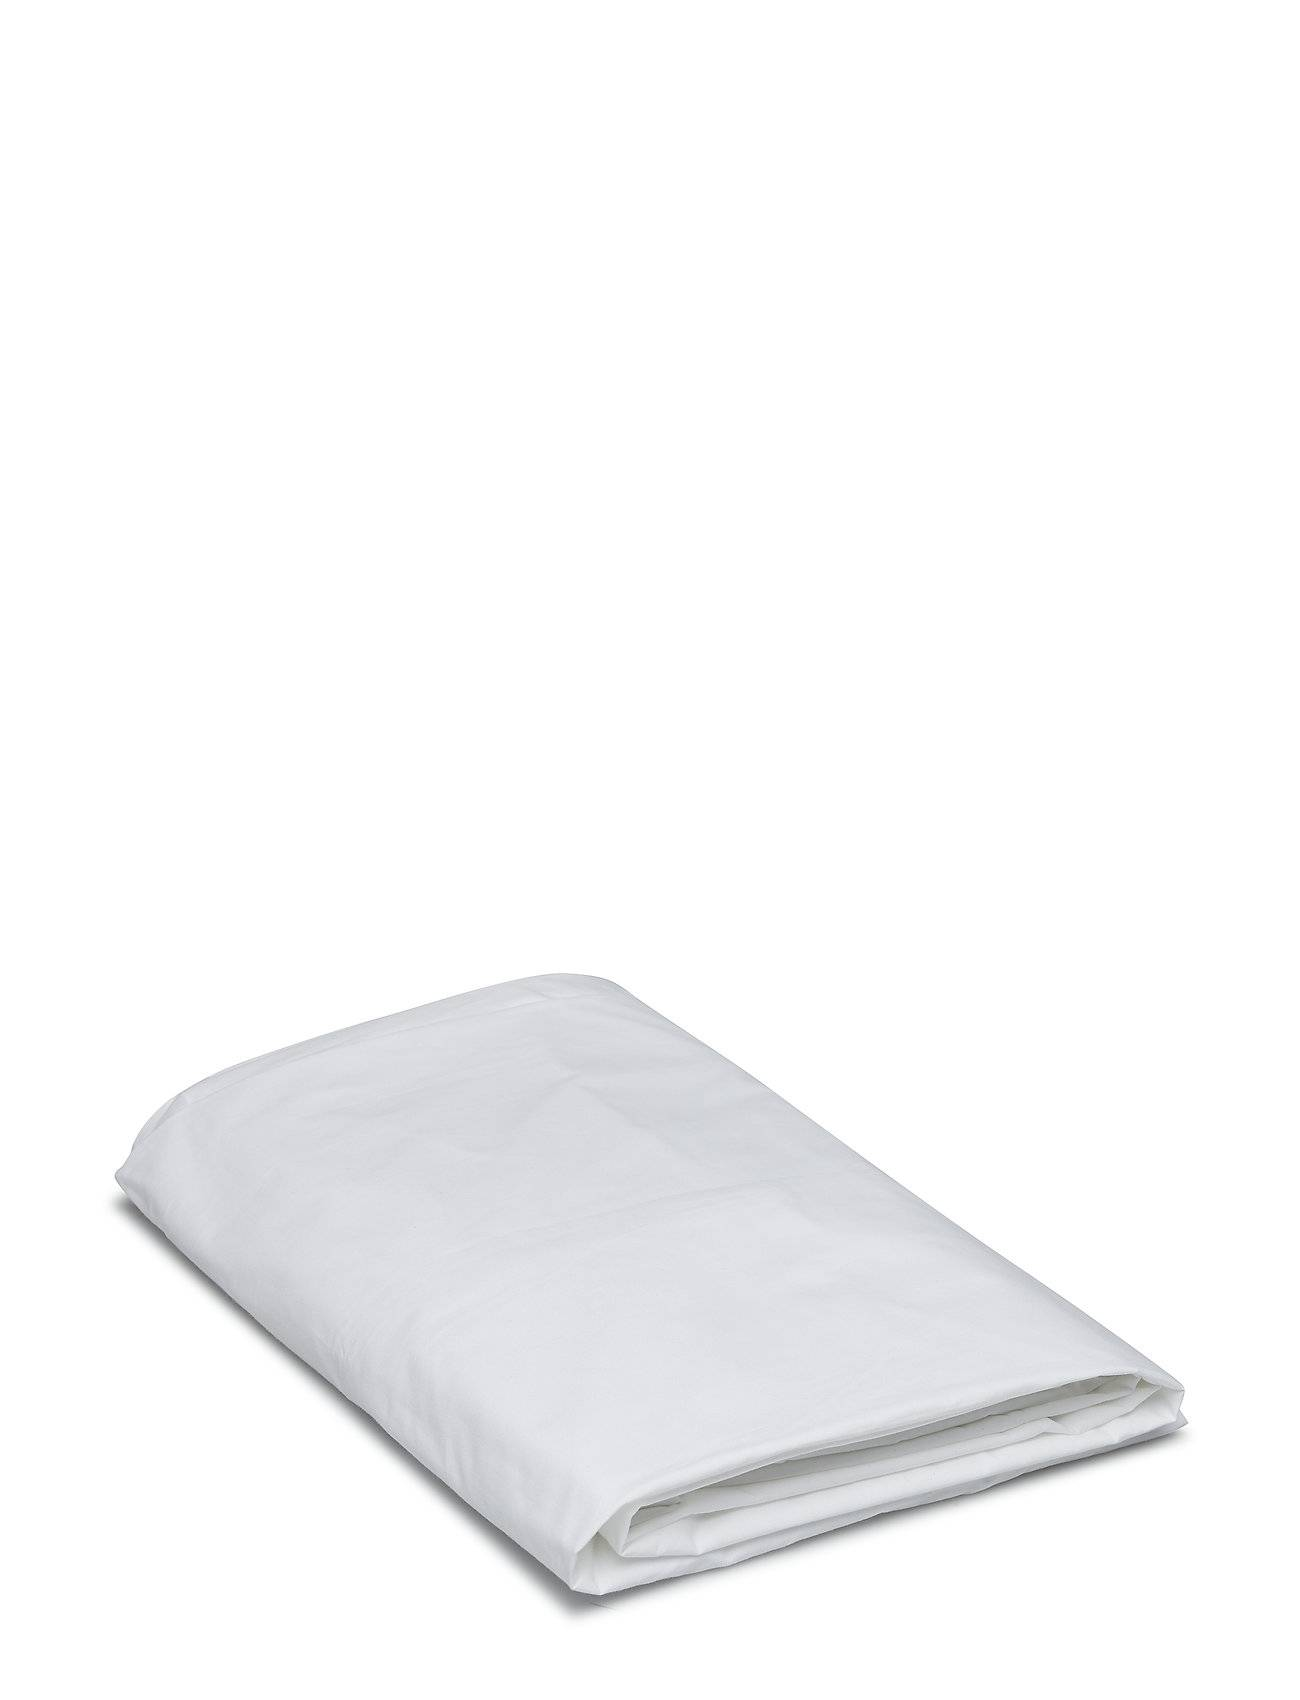 Gripsholm Fitted Sheet Percale Home Bedroom Bedding Sheets Valkoinen Gripsholm